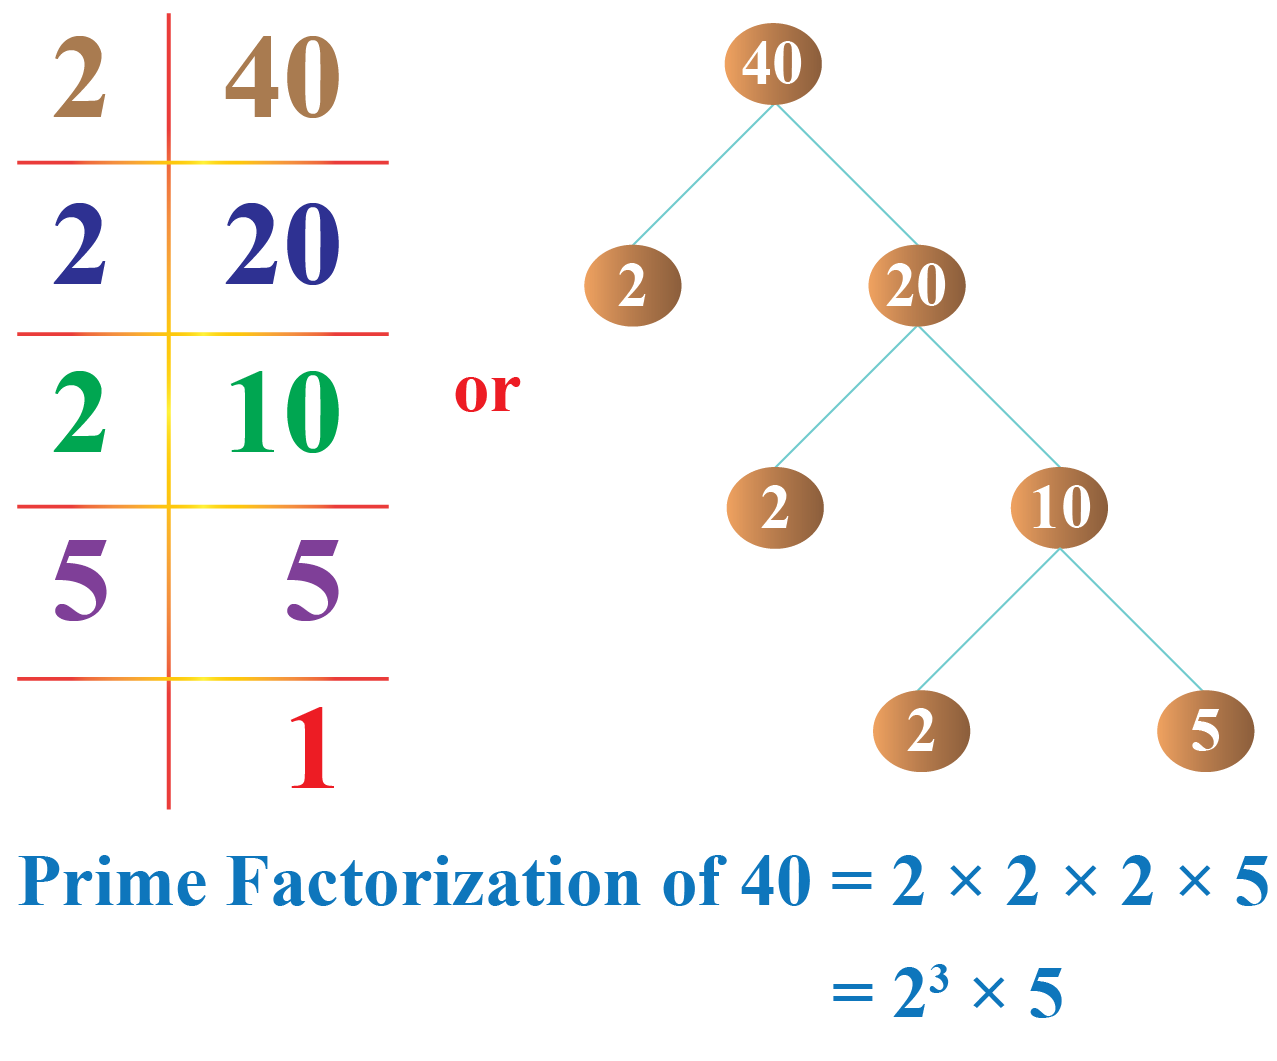 prime factorization of 40